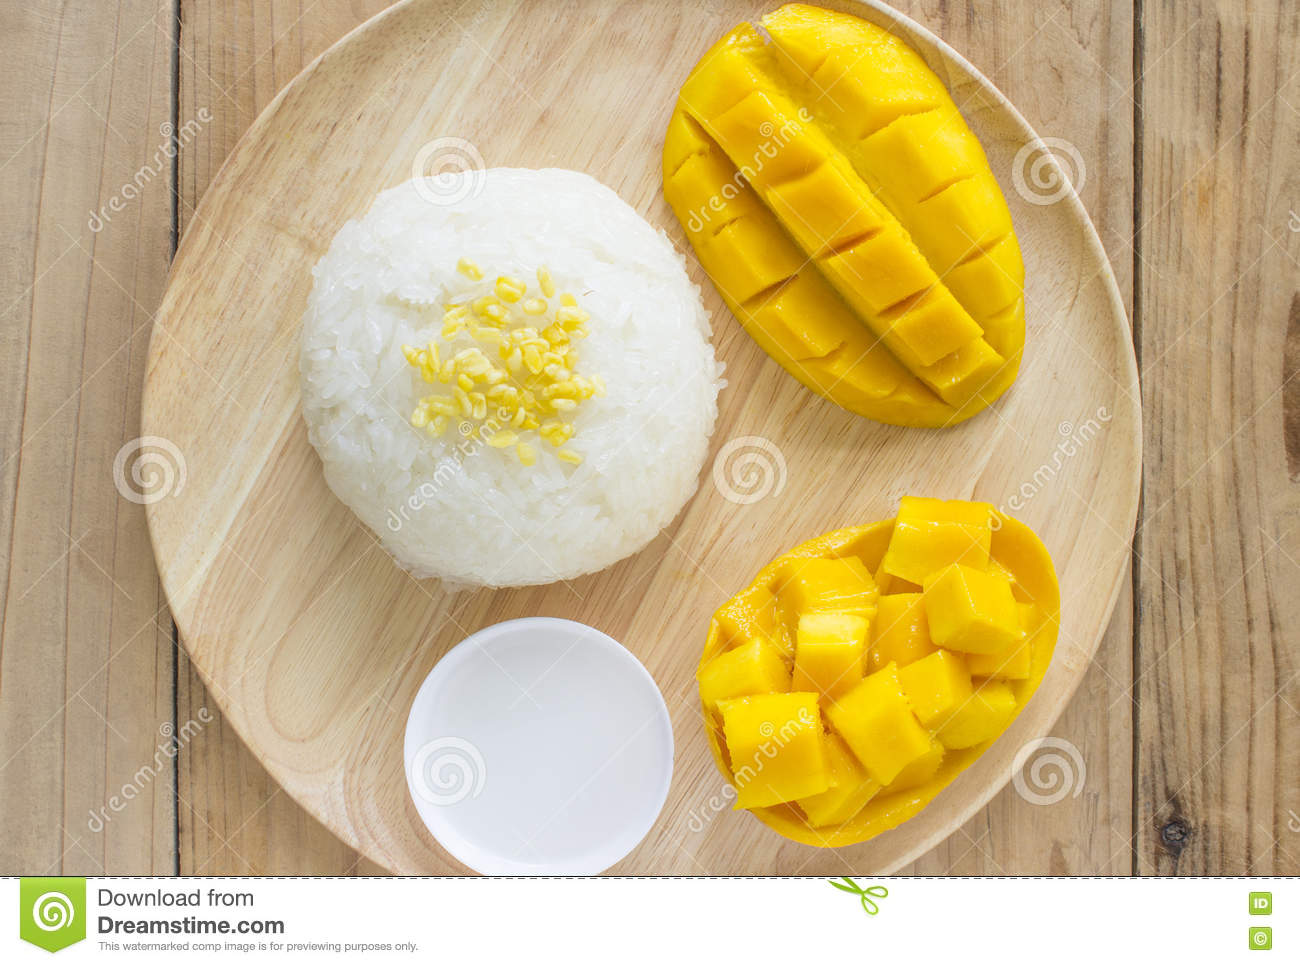 Golden Mango Sticky Rice To Eat Stock Photo Image: 72476451